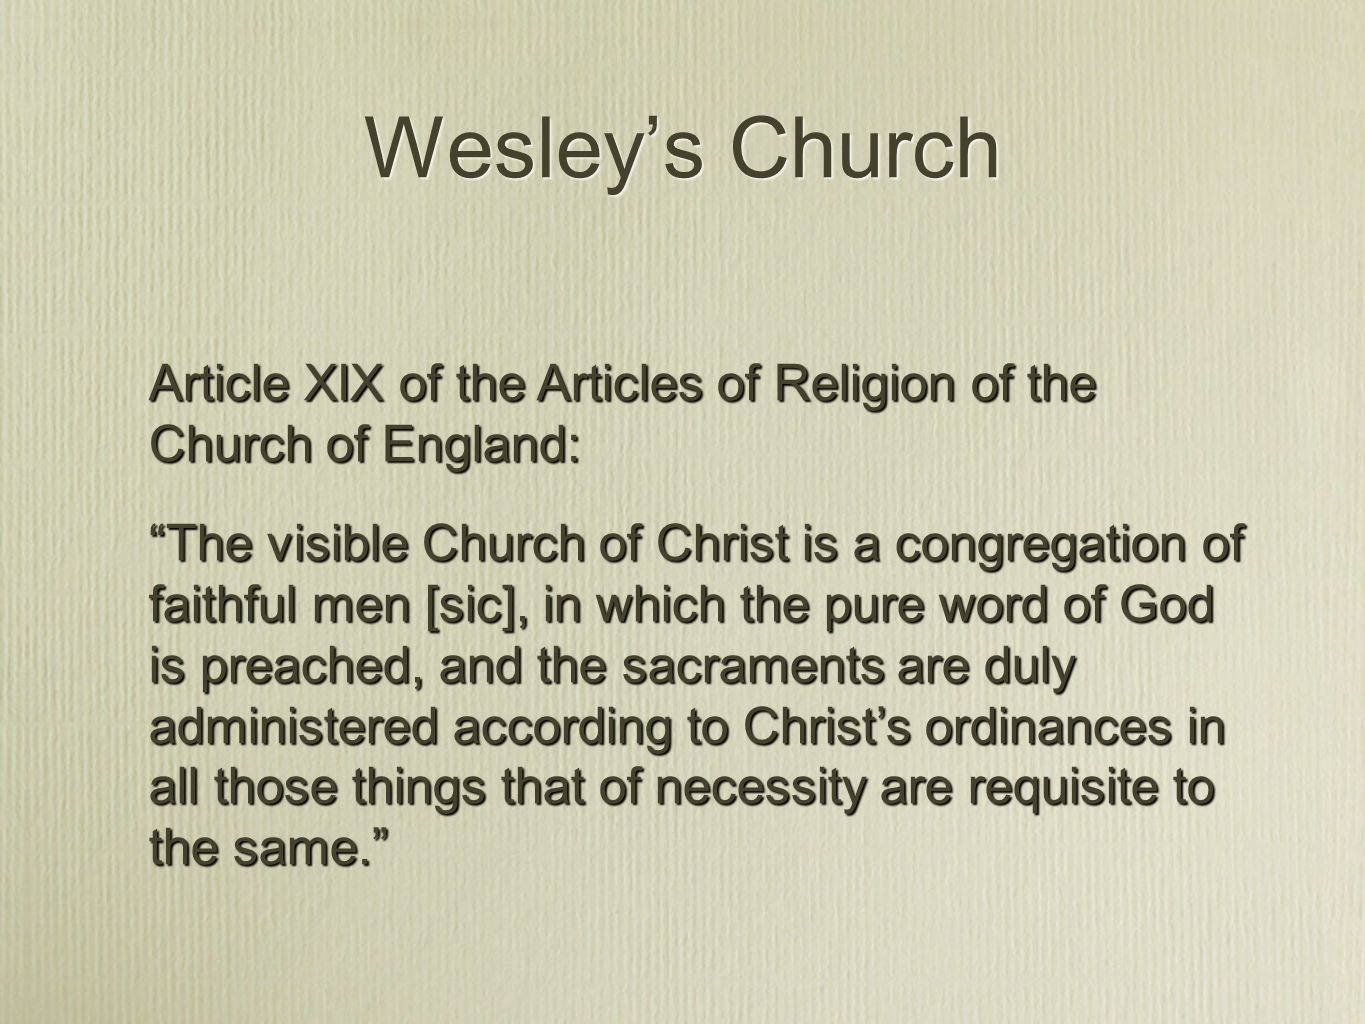 Wesley's Church Article XIX of the Articles of Religion of the Church of England: The visible Church of Christ is a congregation of faithful men [sic], in which the pure word of God is preached, and the sacraments are duly administered according to Christ's ordinances in all those things that of necessity are requisite to the same.